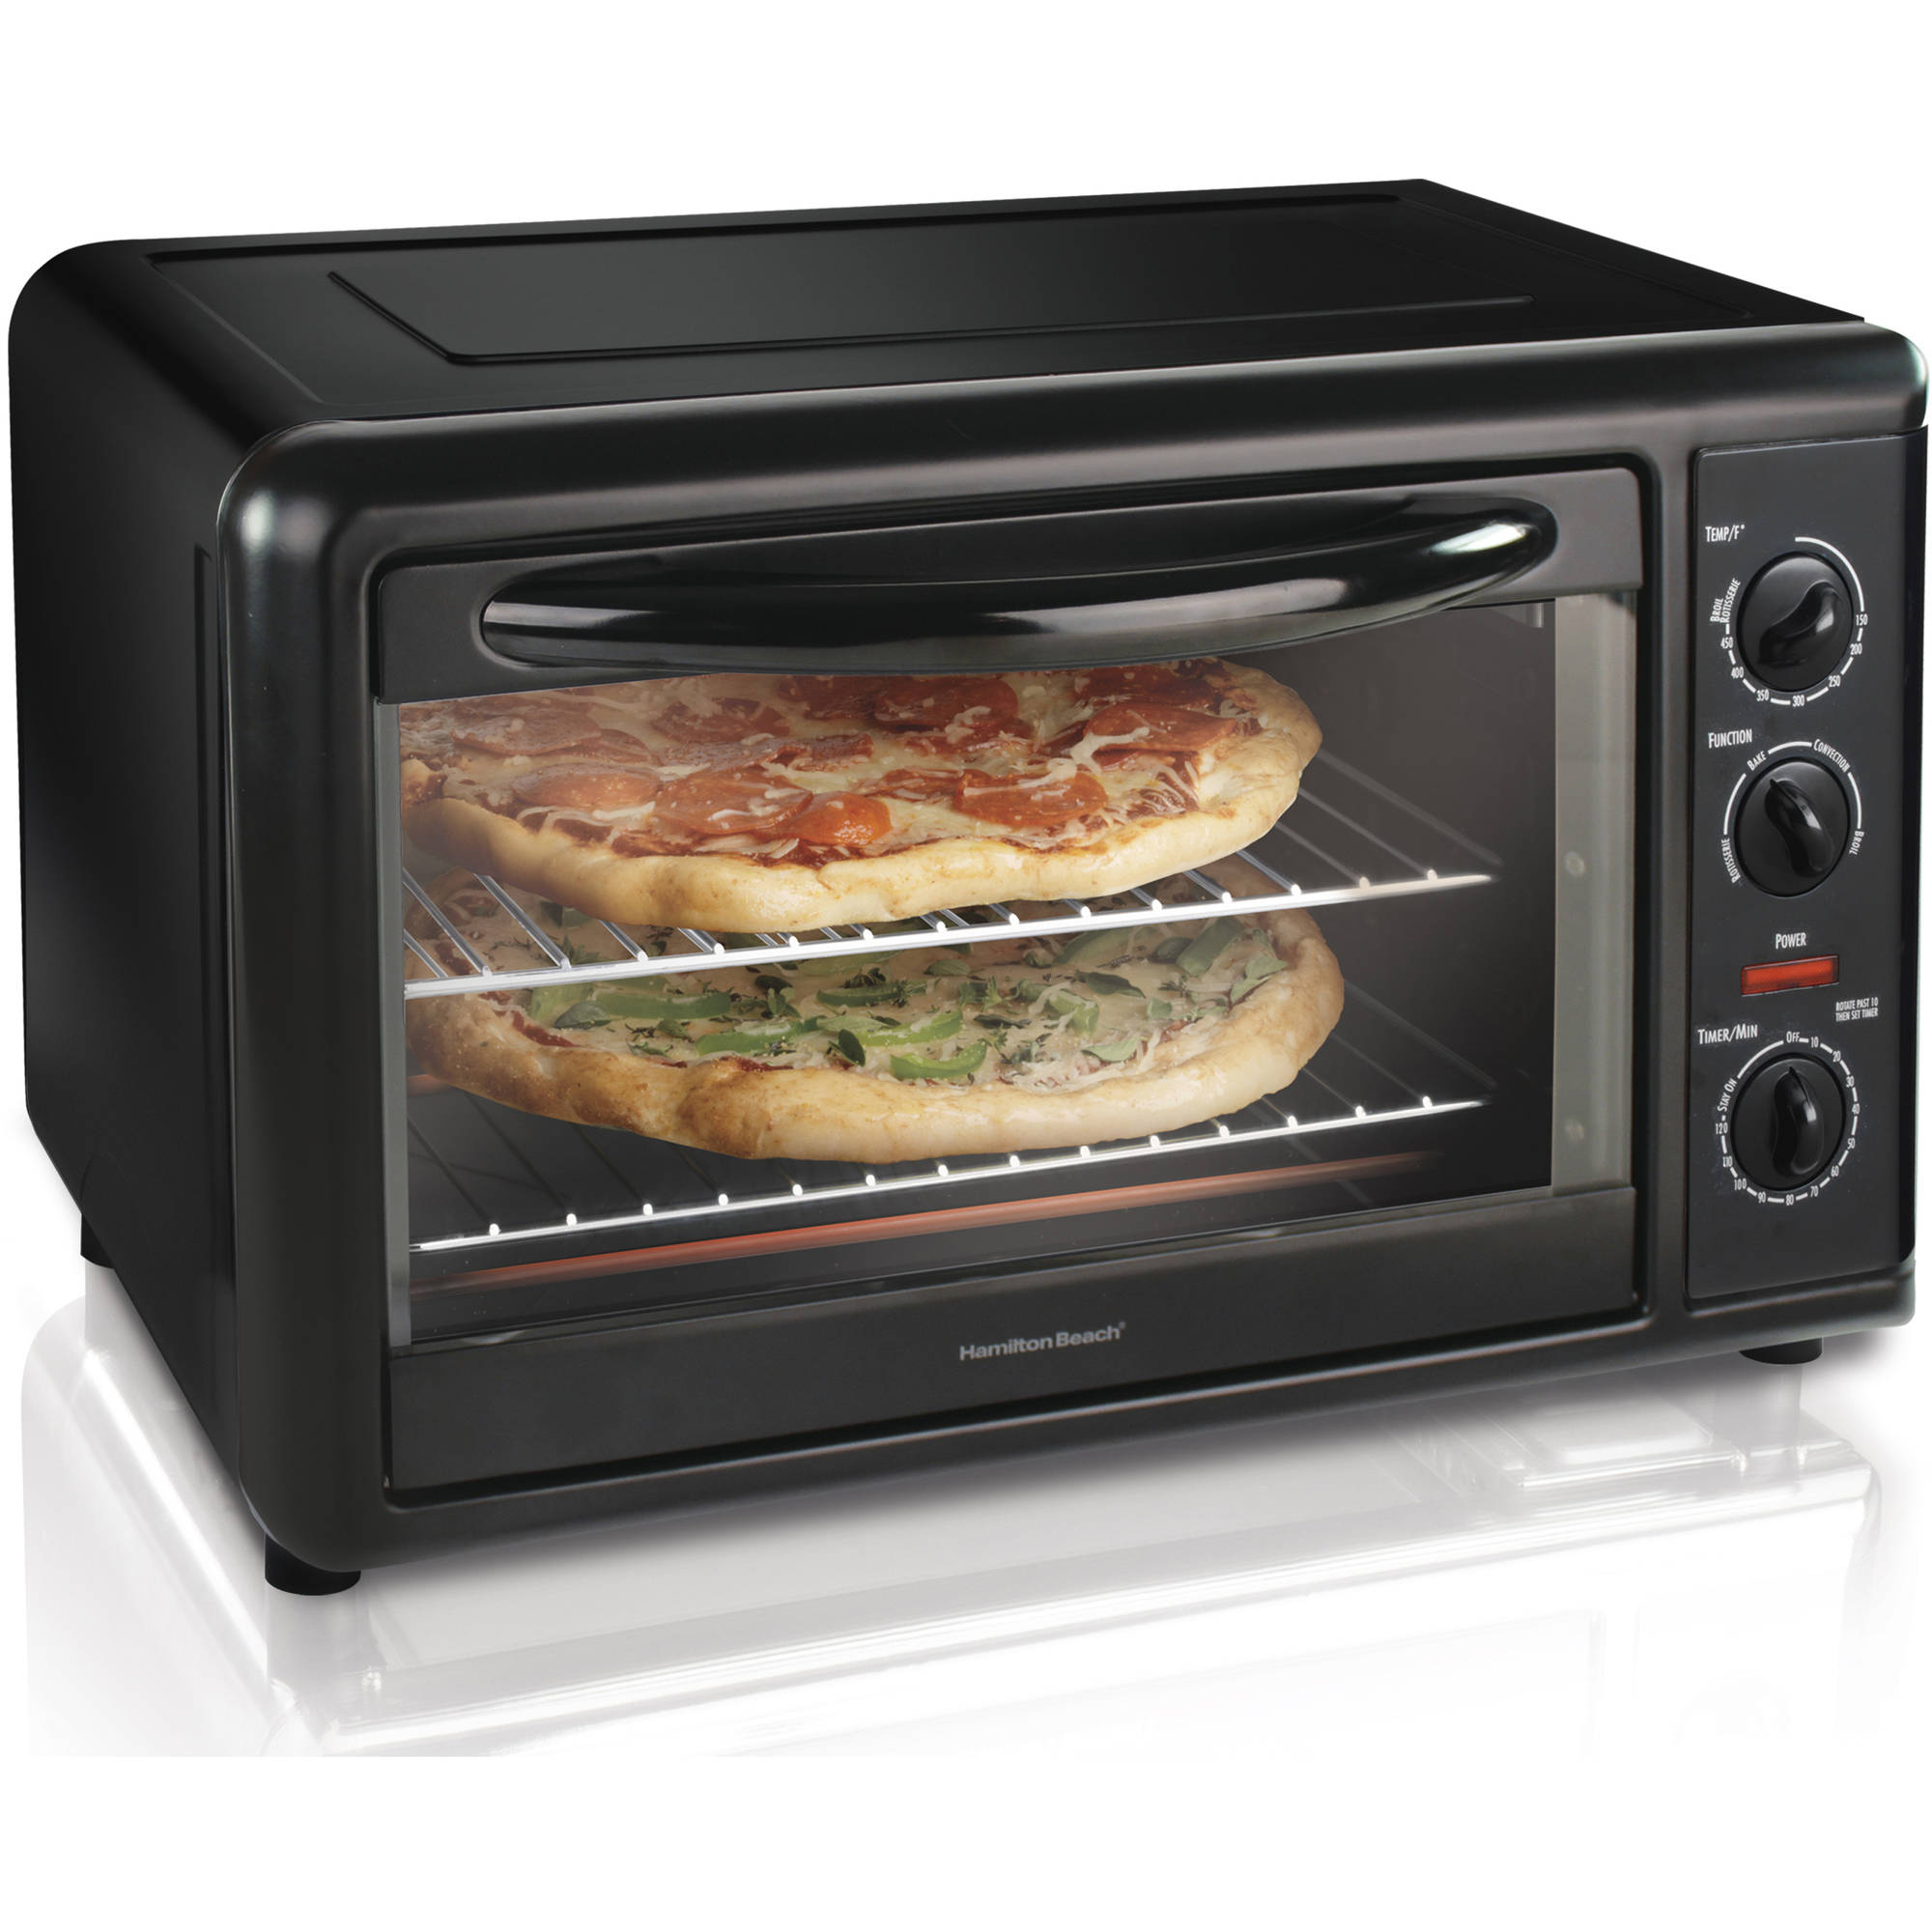 Refurbished Hamilton Beach Countertop Oven with Convection and Rotisserie   Model# R1304